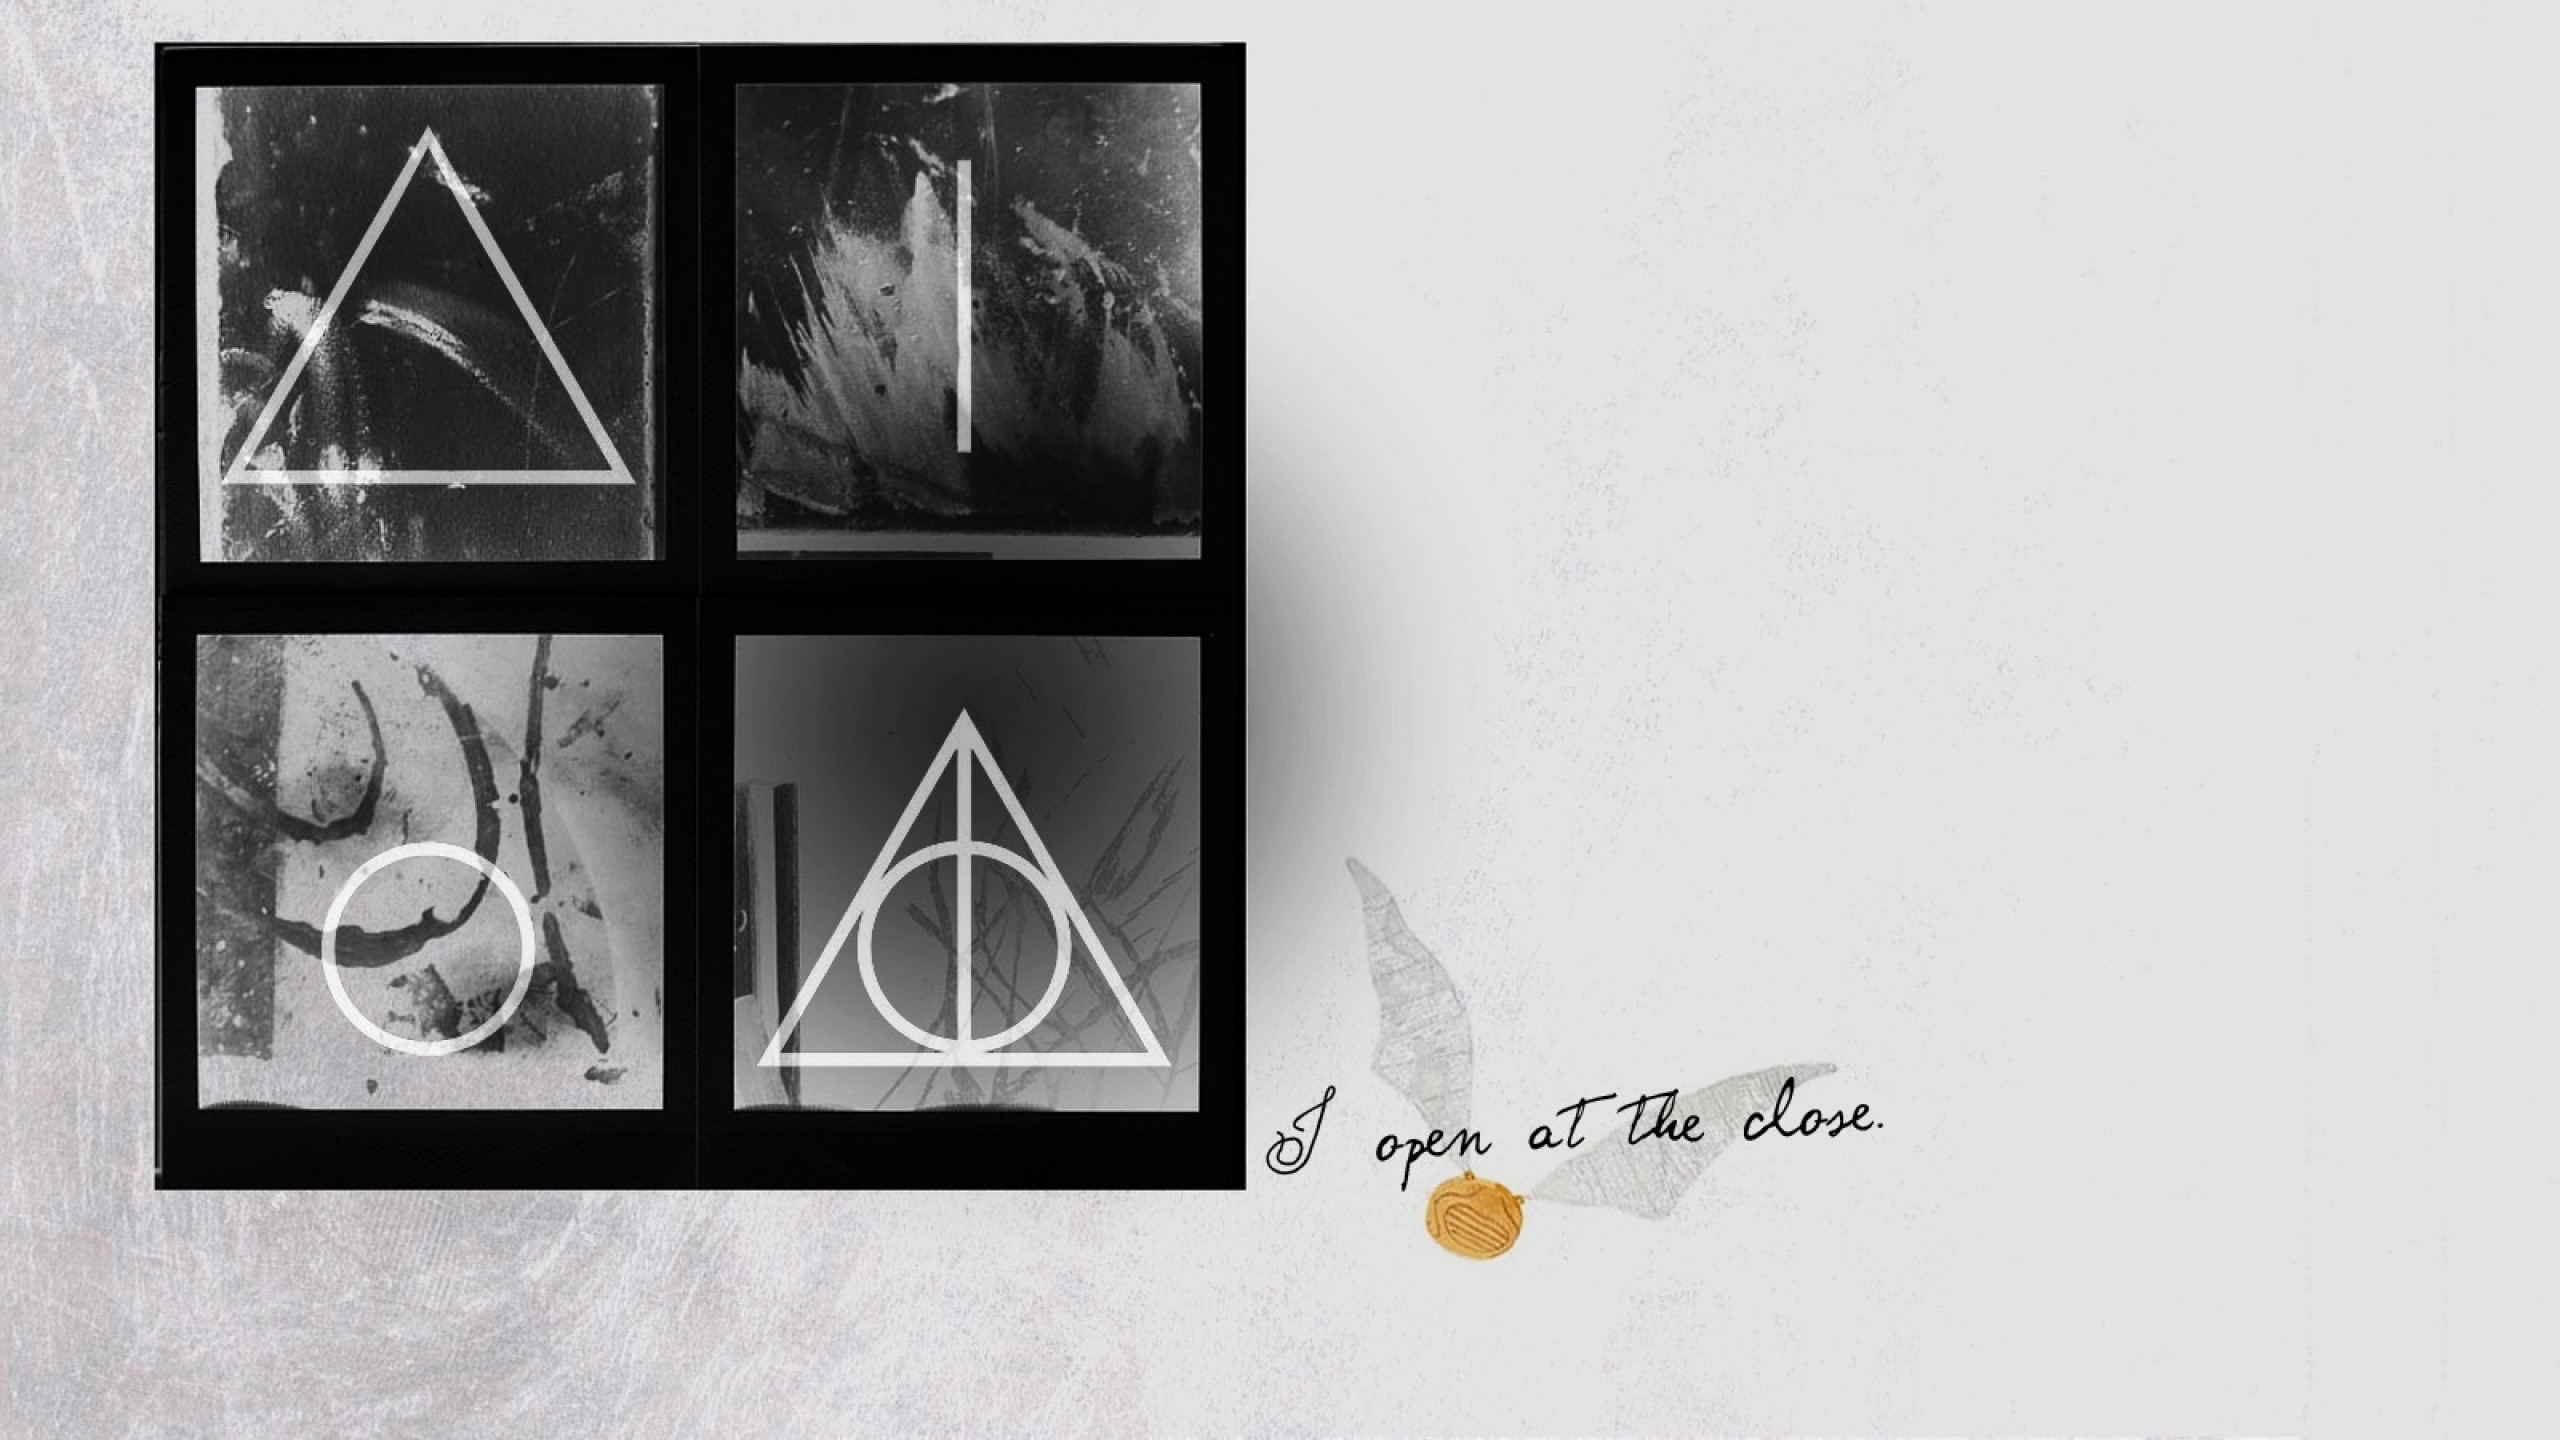 Download Wallpaper Harry Potter Sign - 795907-deathly-hallows-symbol-wallpaper-2560x1440-for-samsung  Graphic_55992.jpg